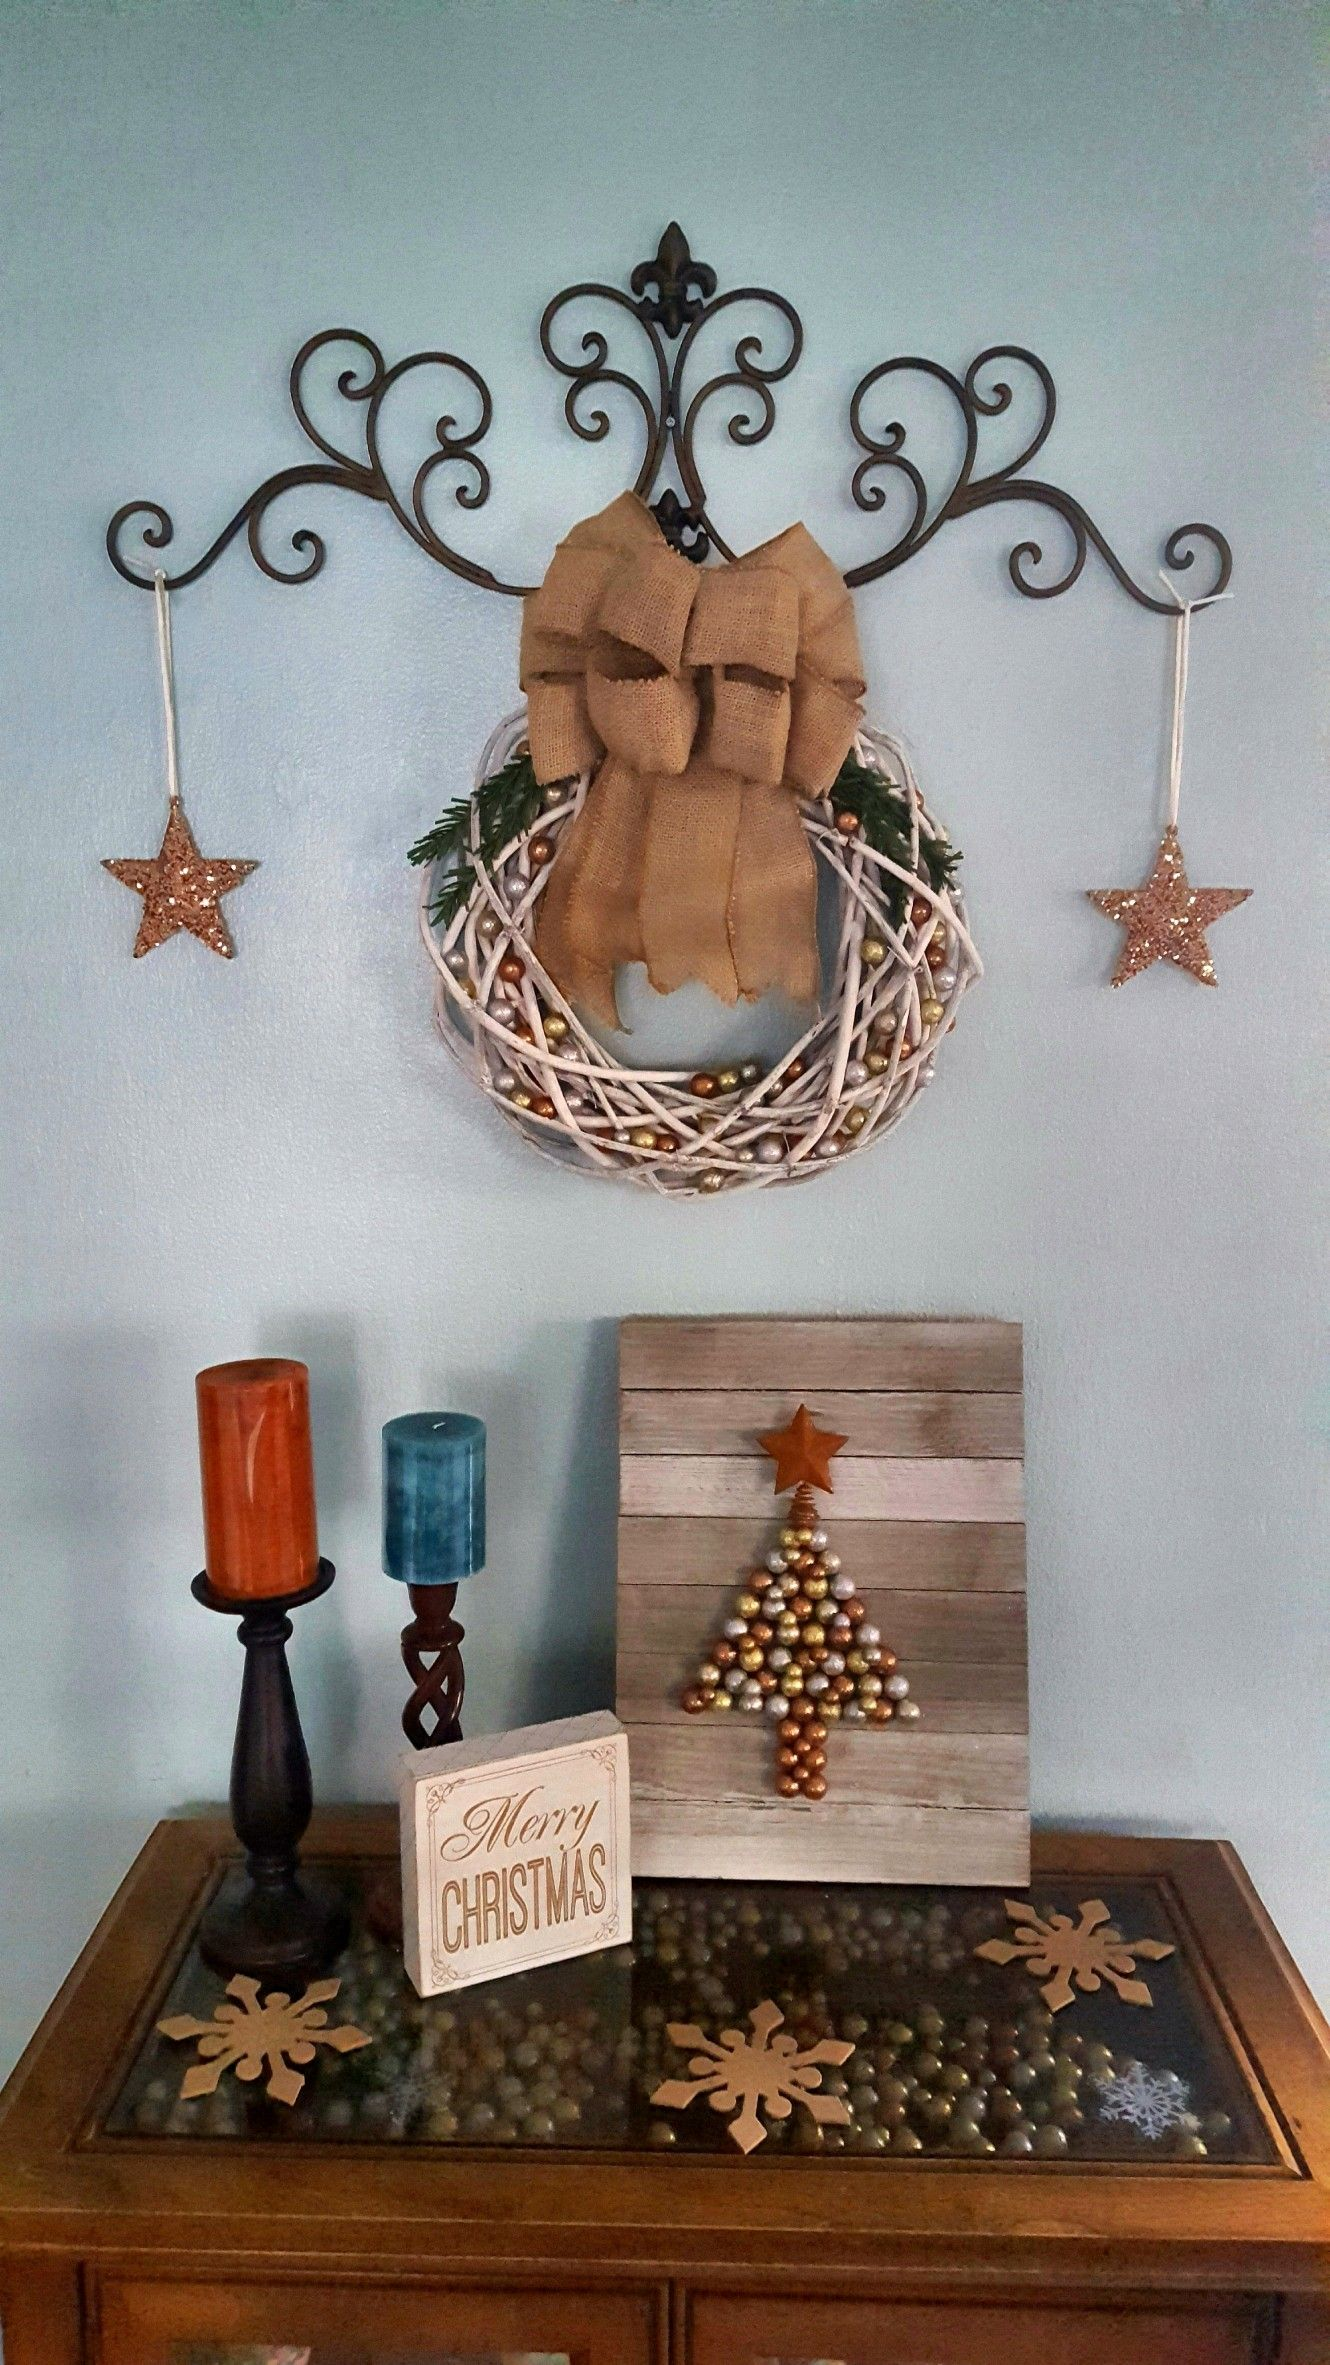 Non traditional holiday decor | Traditional holiday decor ... on Decorative Wall Sconces Non Lighting id=26060